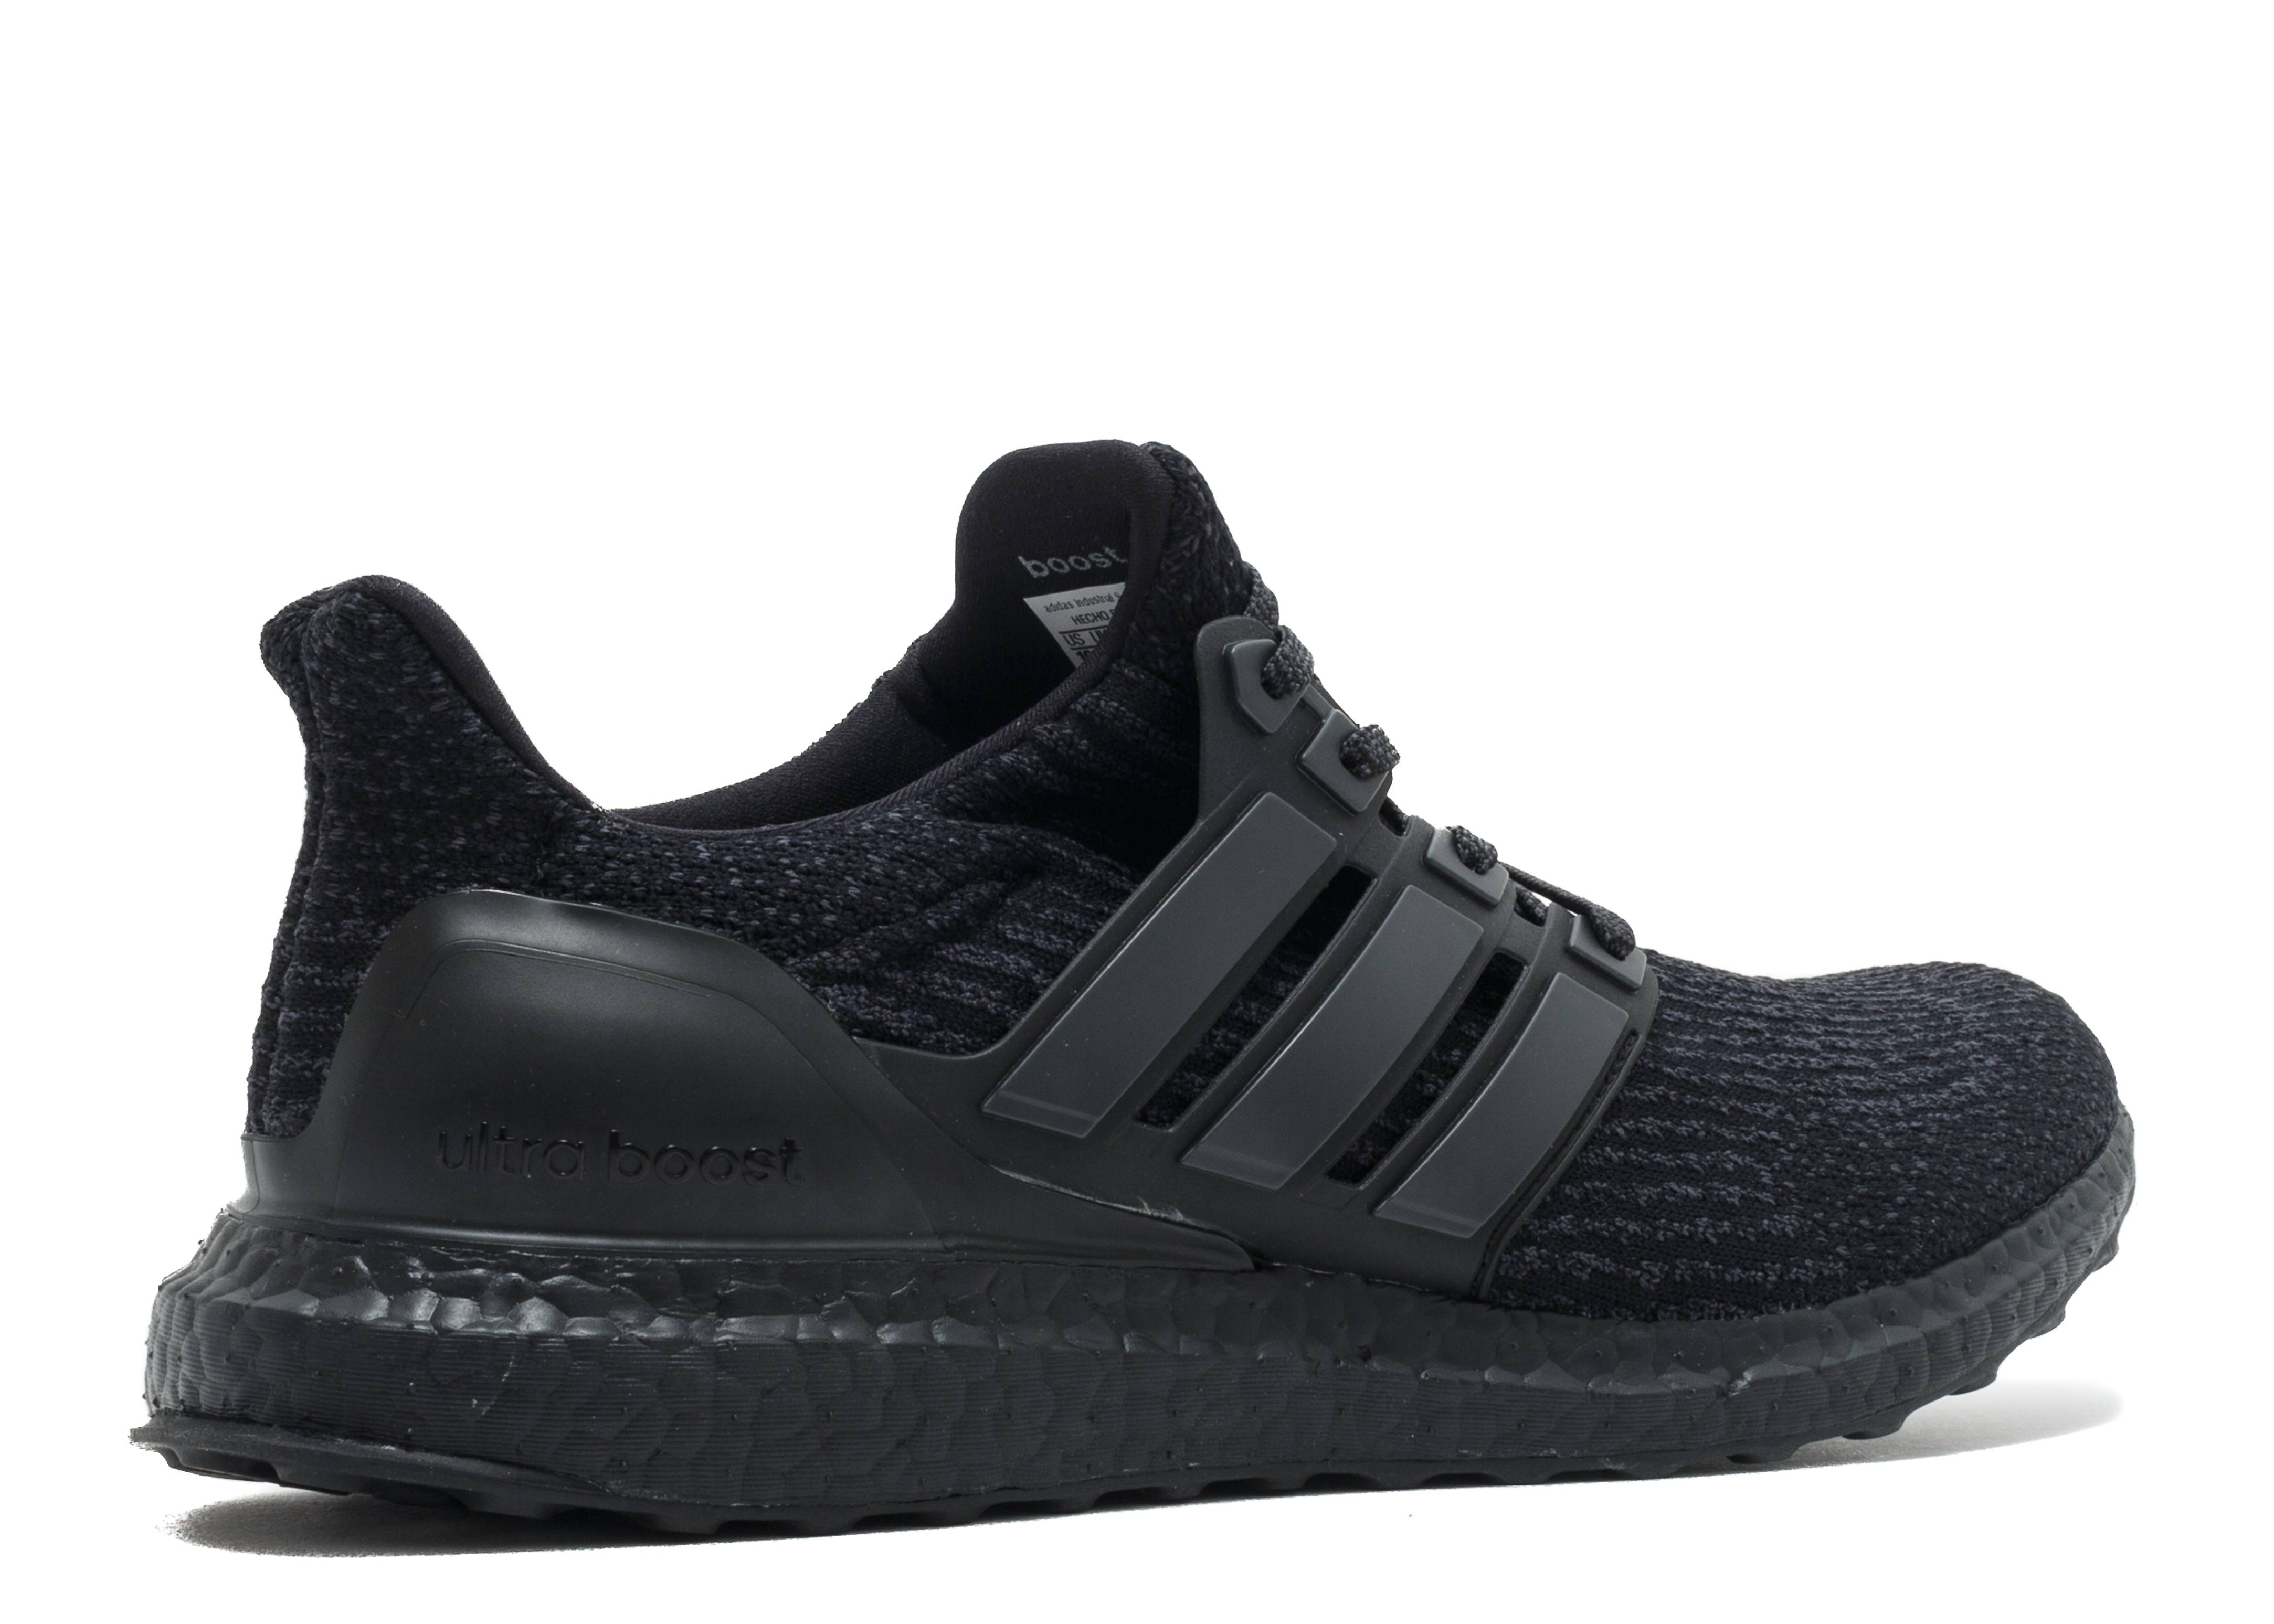 52% Off Cheap Adidas ace 16 purecontrol ultra boost (by9091) retail price